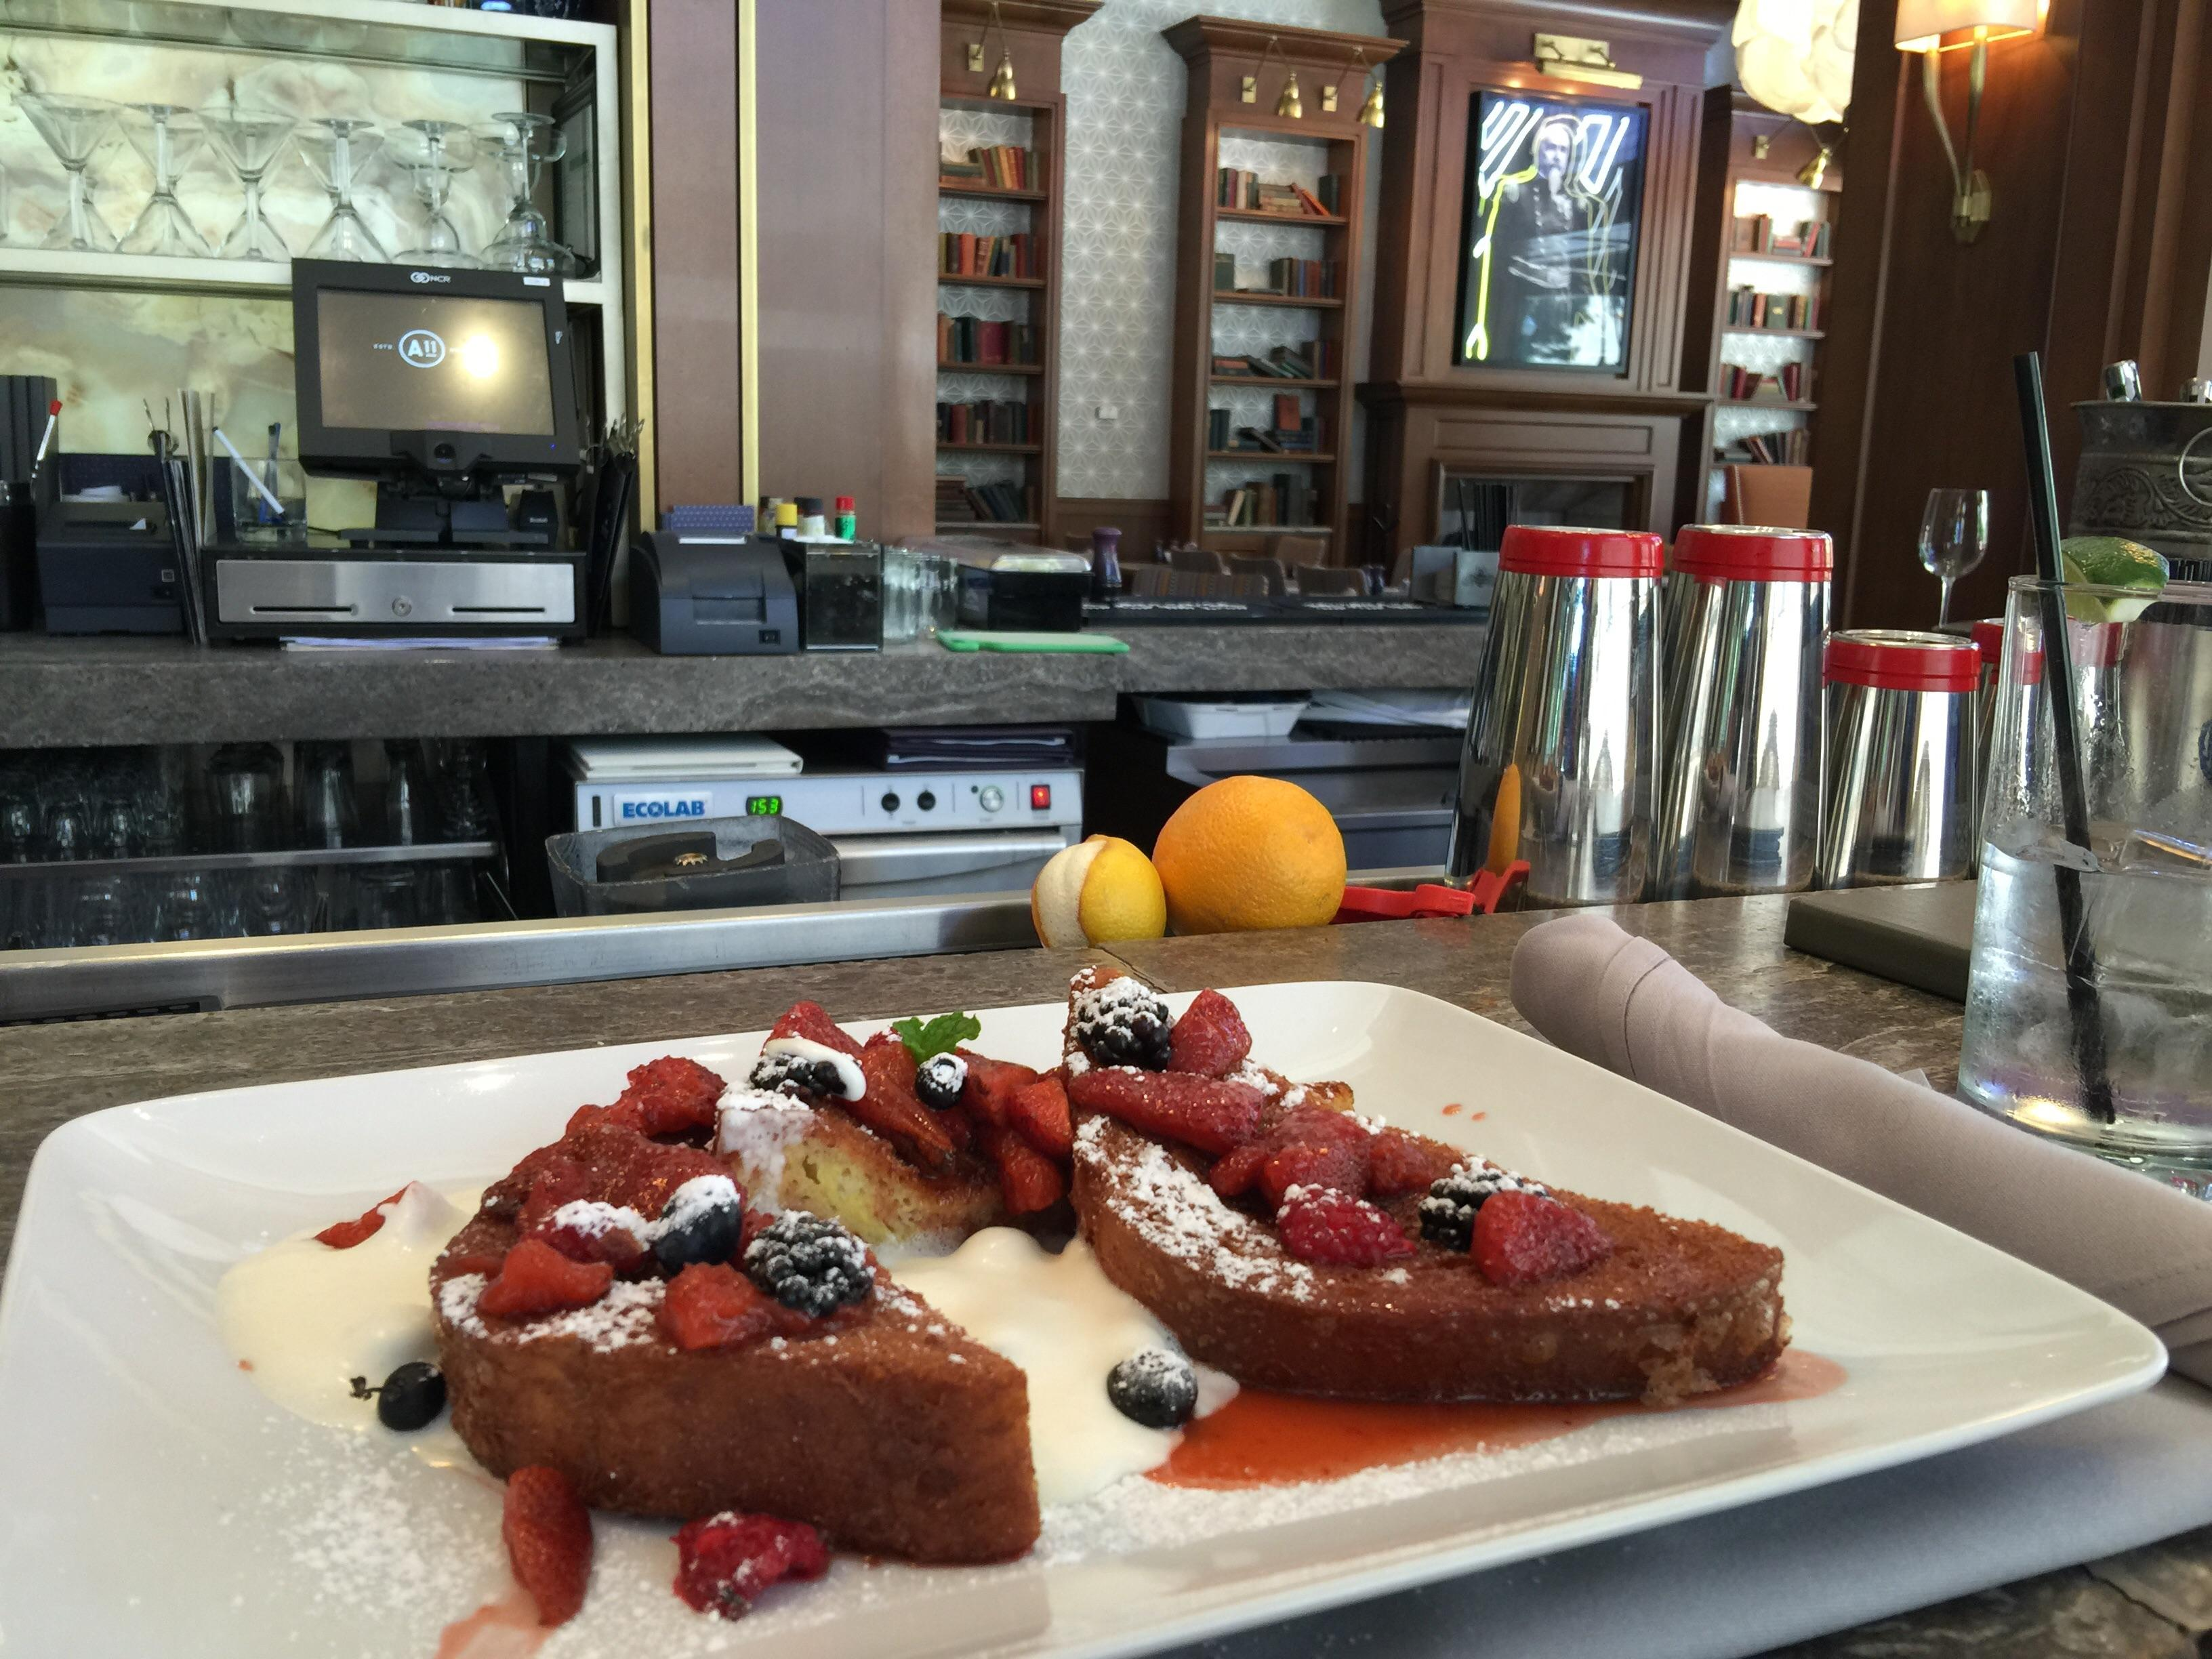 French toast at Anson 11. Crispy served with Chantilly cream and fresh berries. #food $10